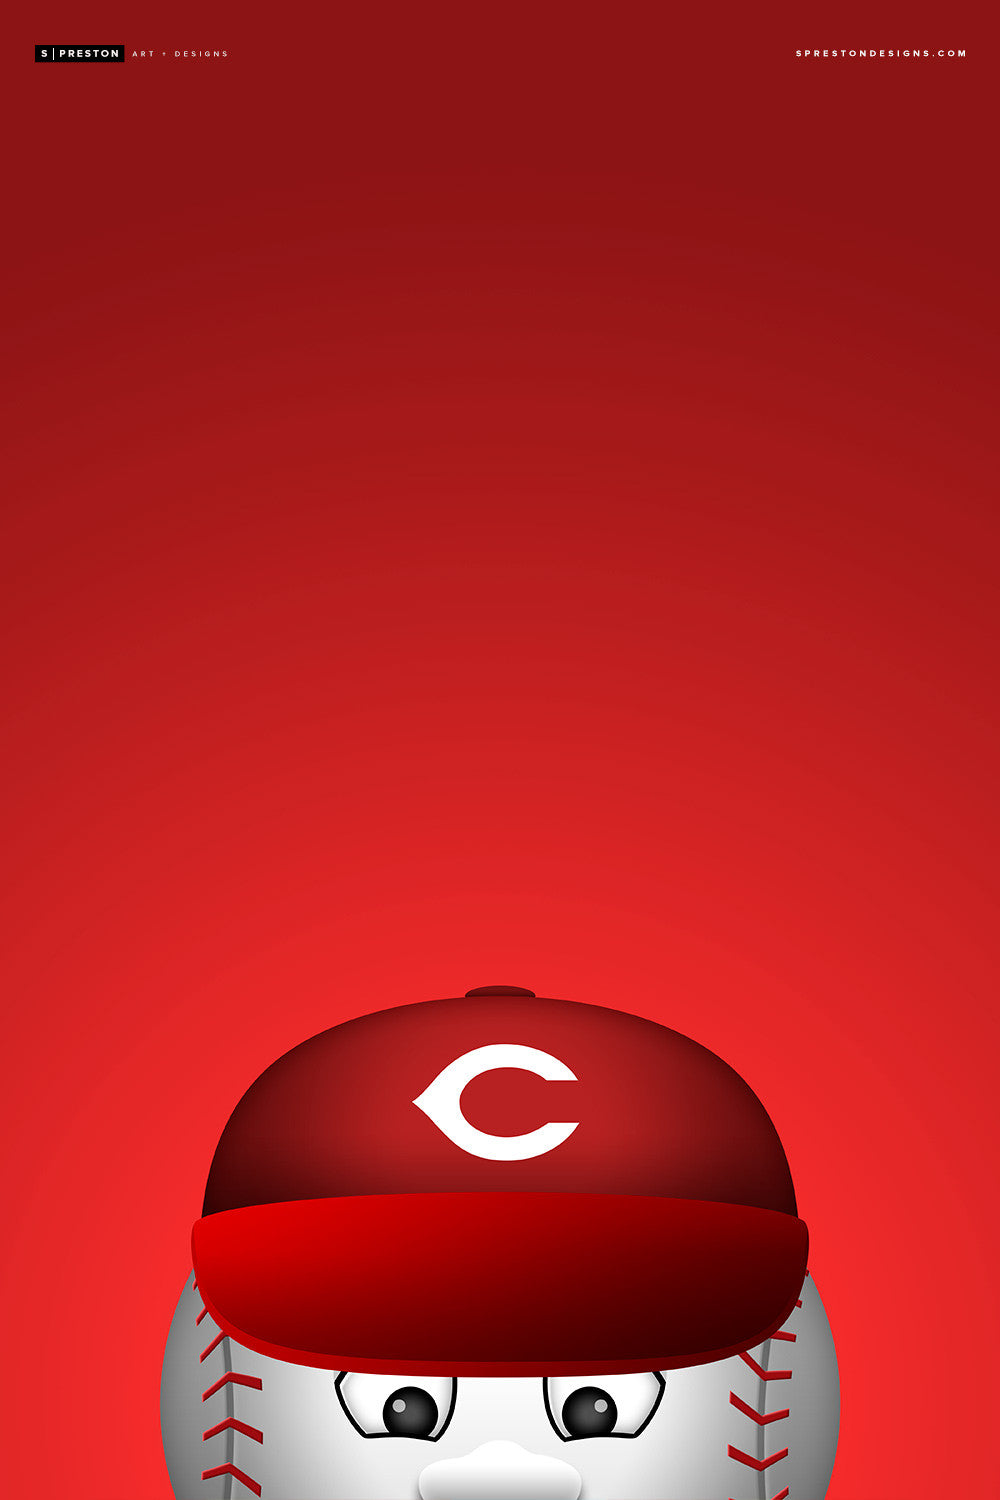 Minimalist Mr. Reds Canvas Canvas - Cincinnati Reds - S. Preston Art + Designs